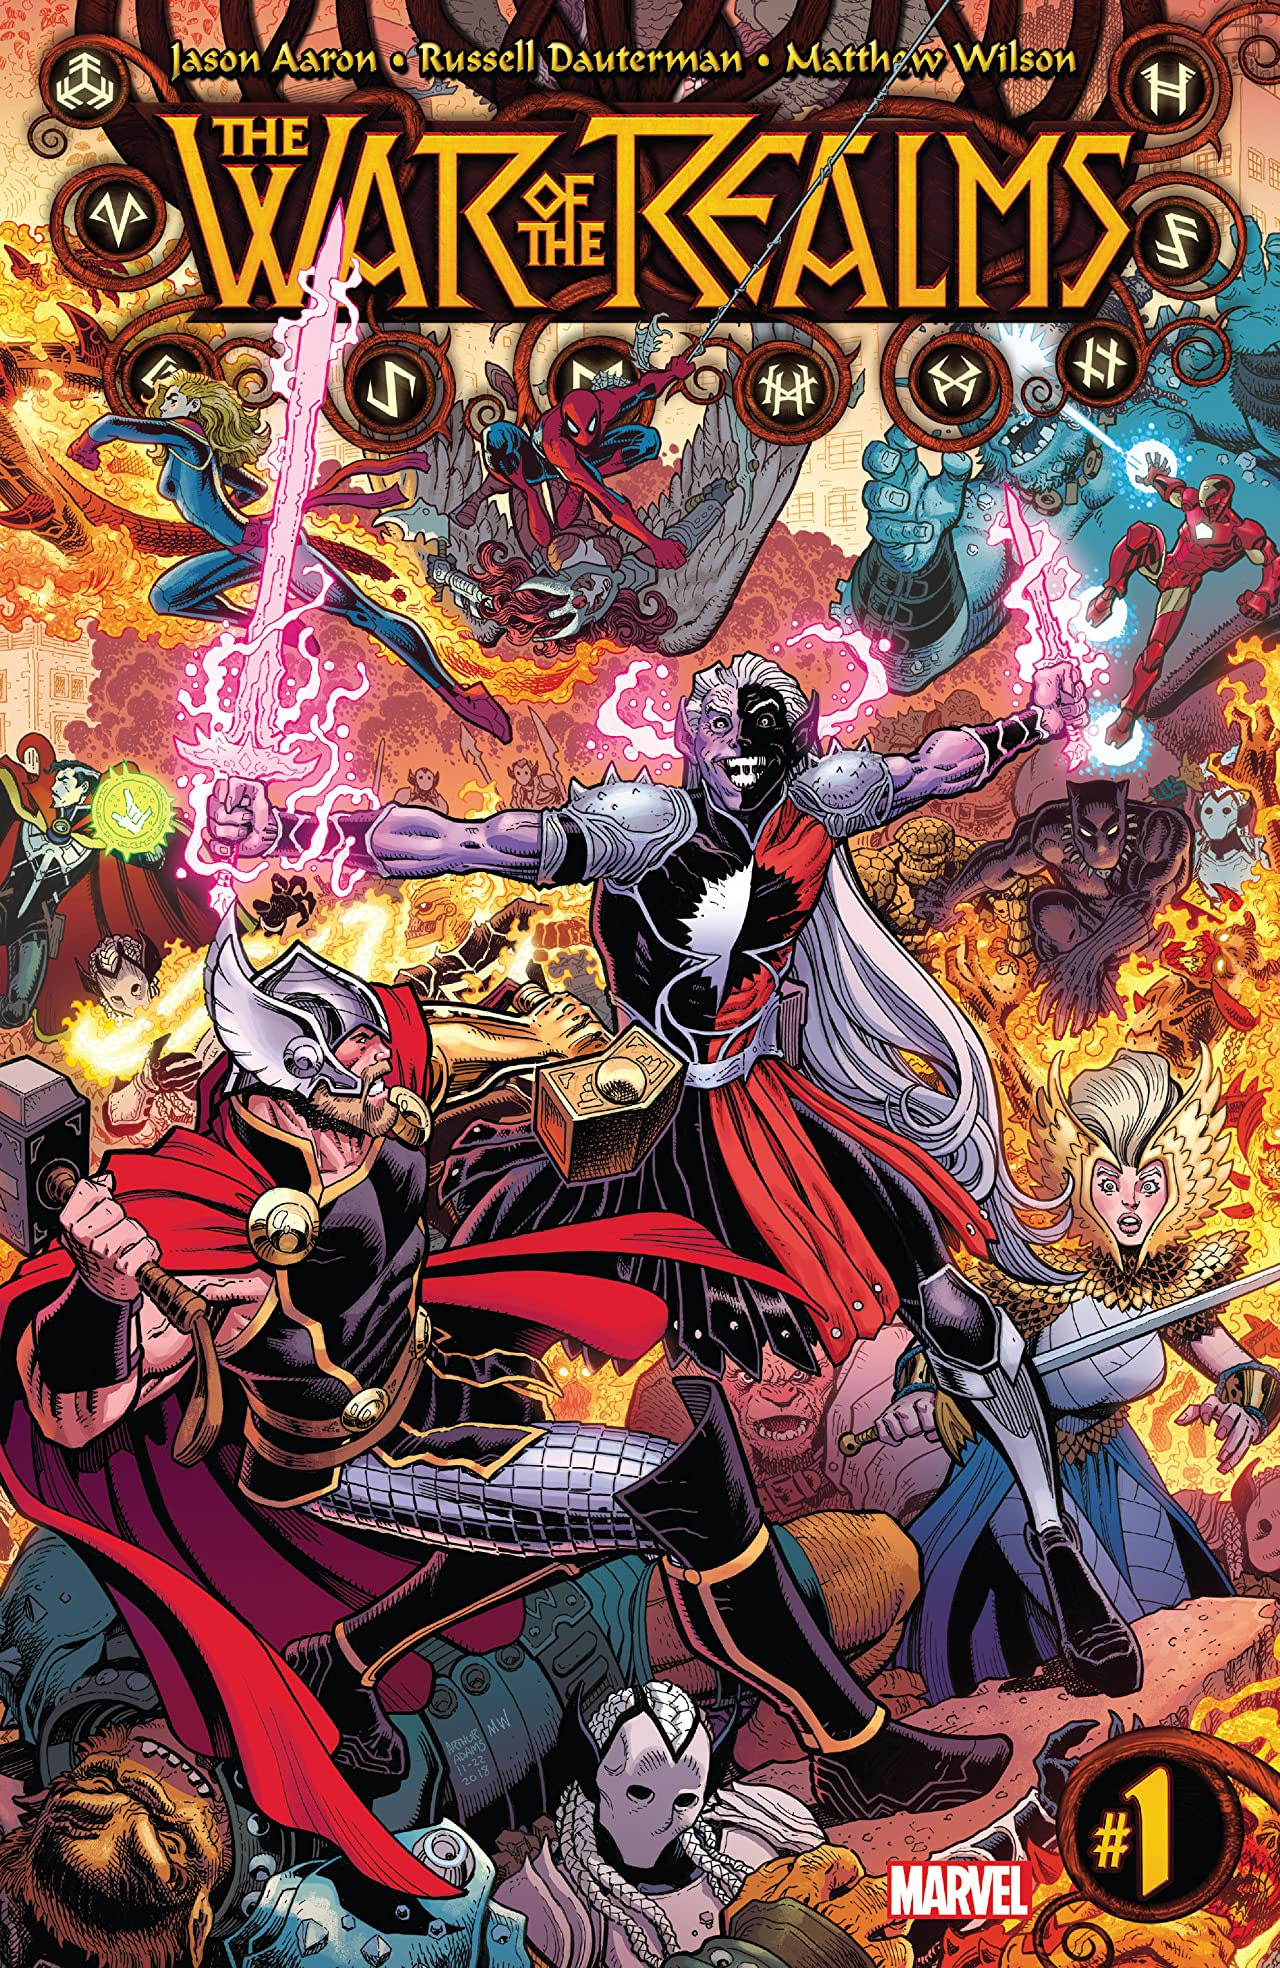 War Of The Realms (2019-) #1 (of 6): Director's Cut